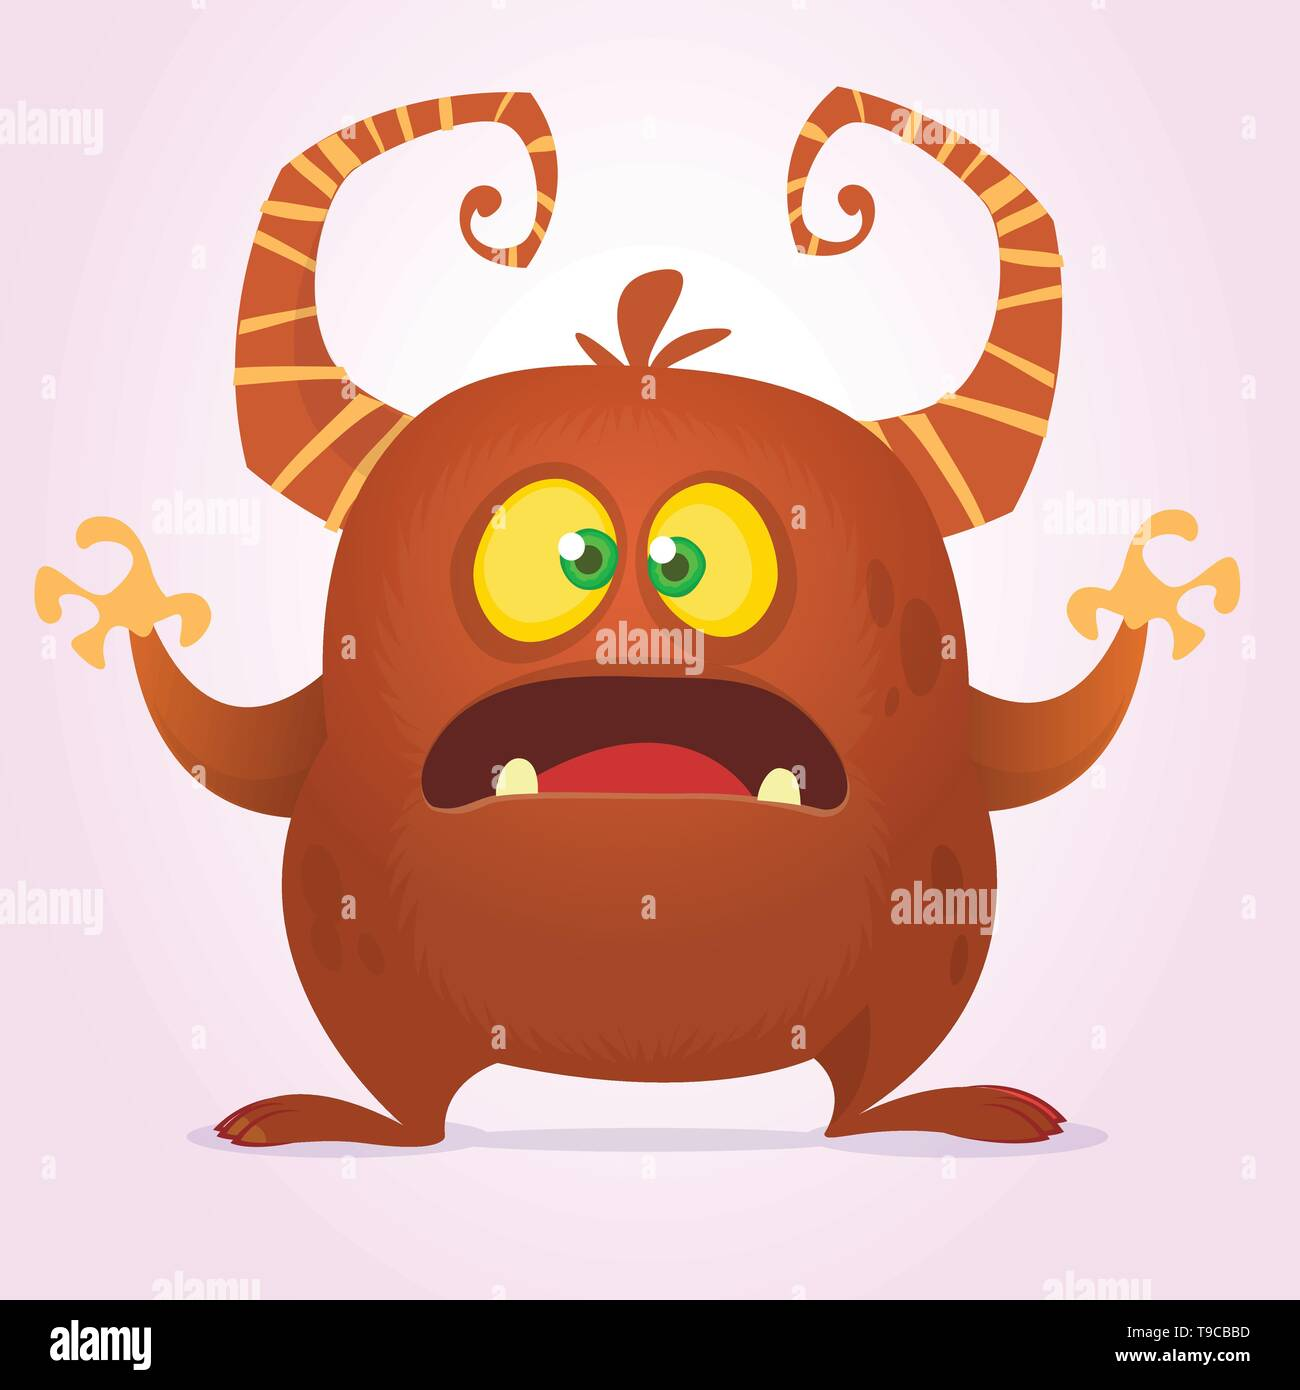 Agry scared cartoon monster with horns. Vector brown monster illustration. Halloween design isolated - Stock Image